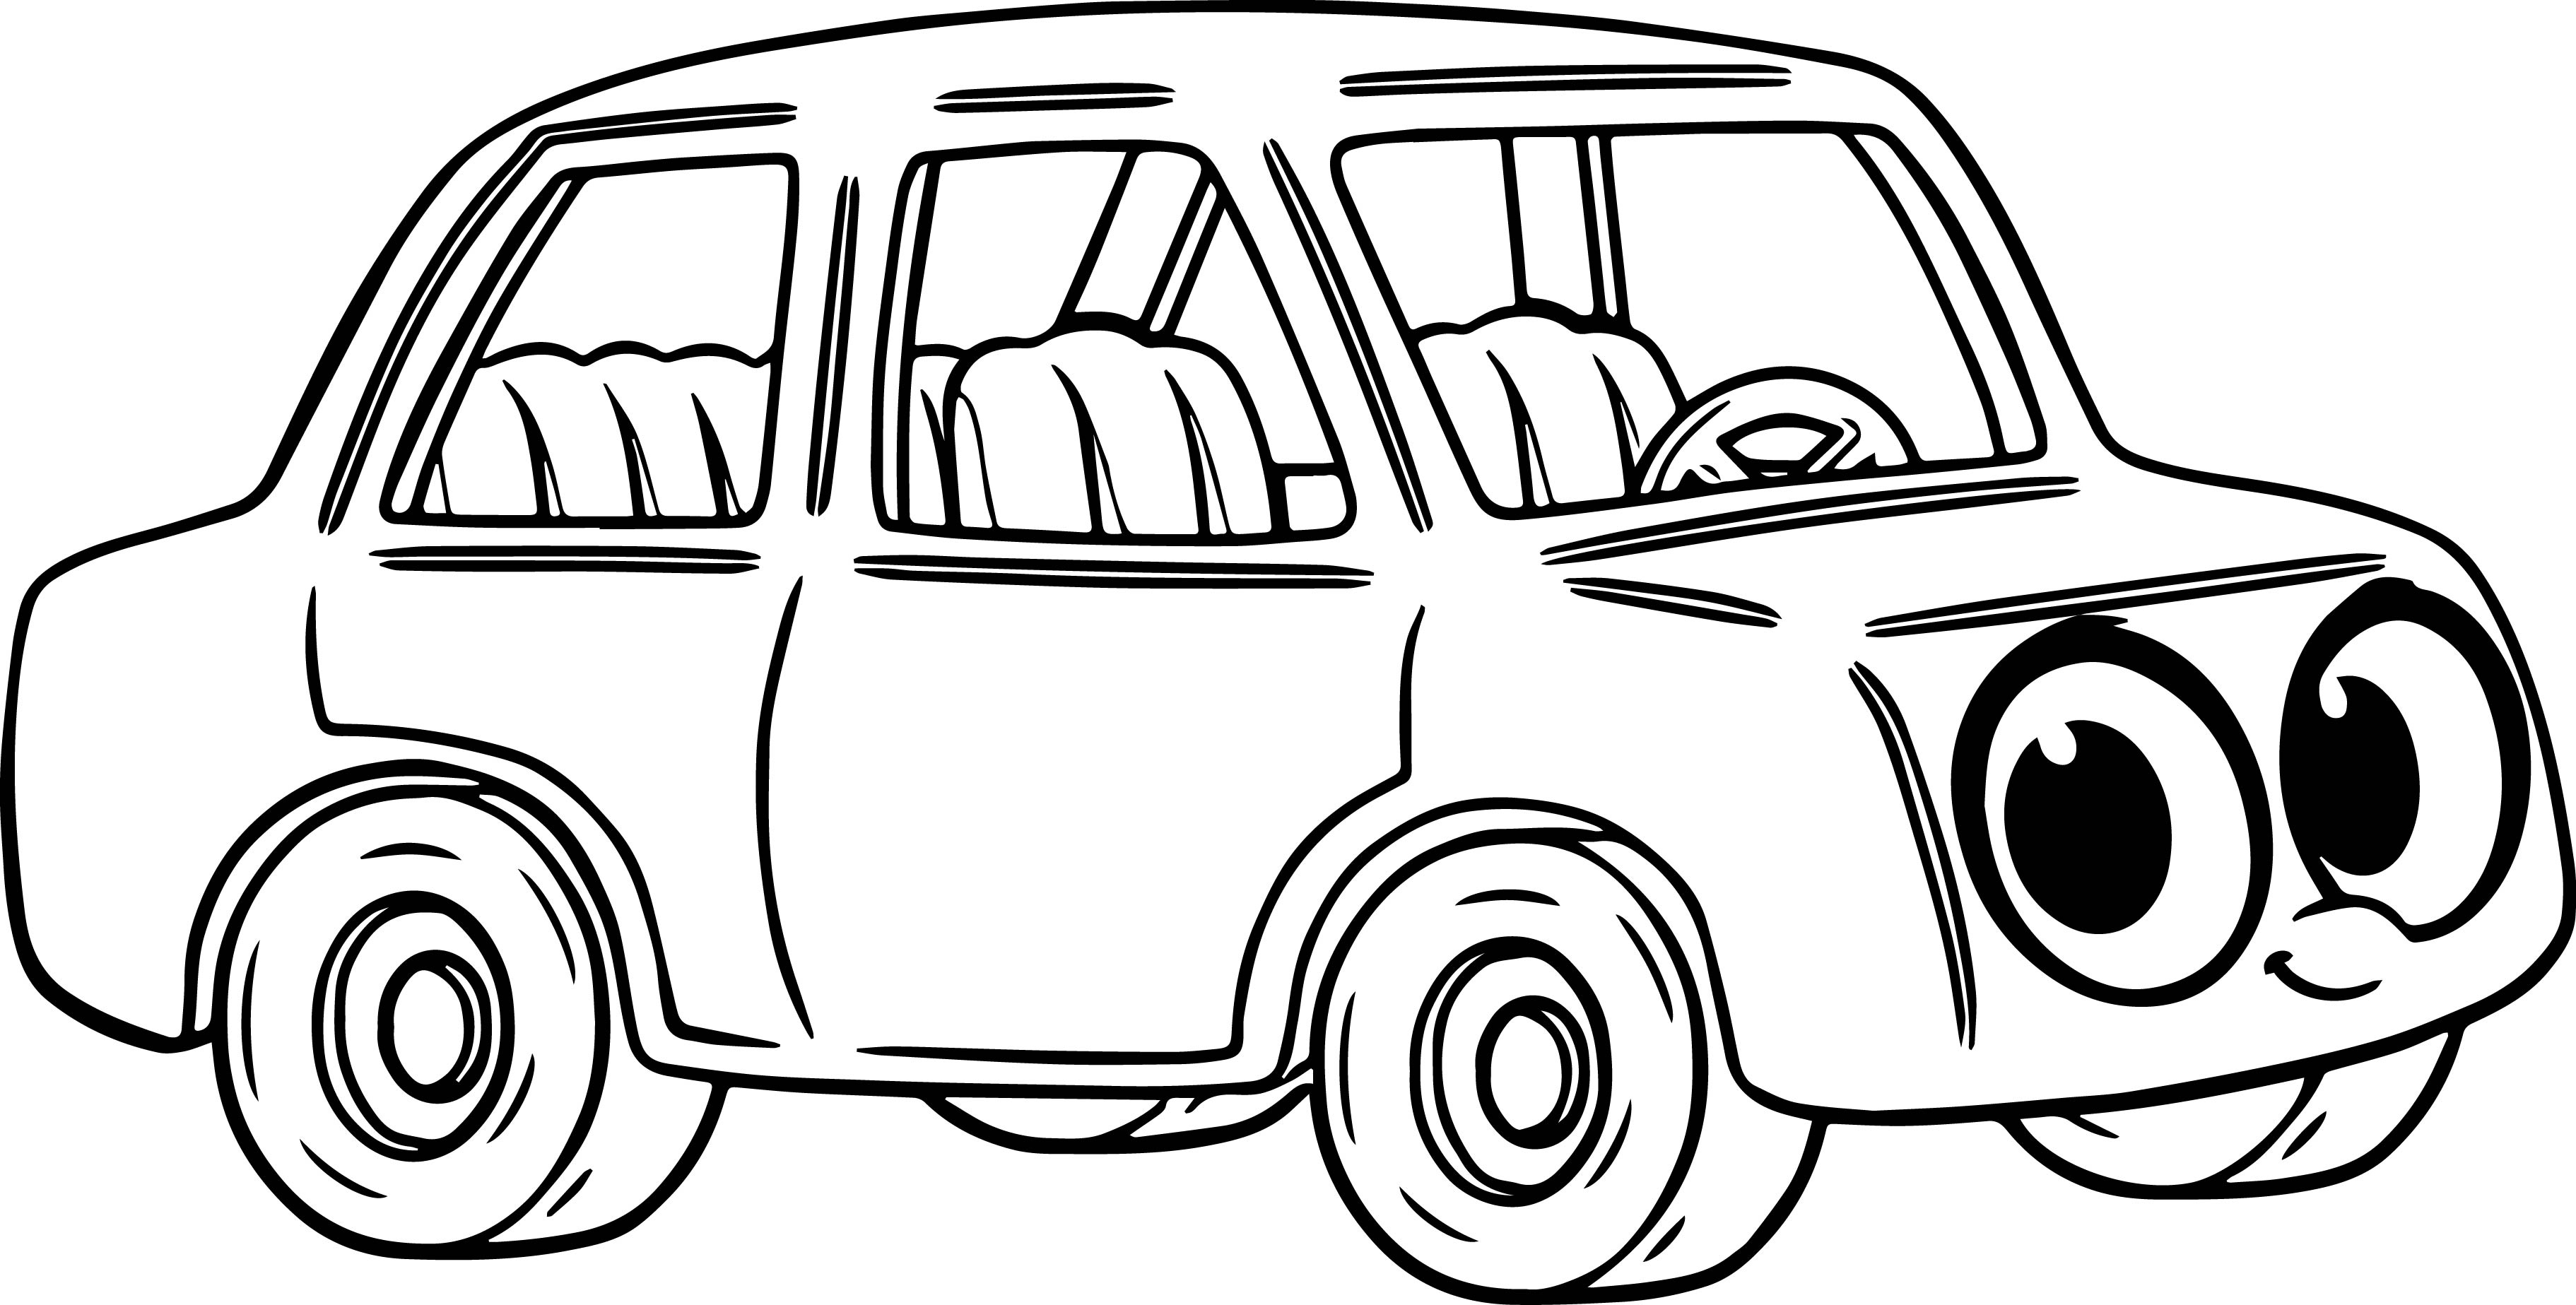 3645x1847 Luxury Car Coloring Pages Logo And Design Ideas